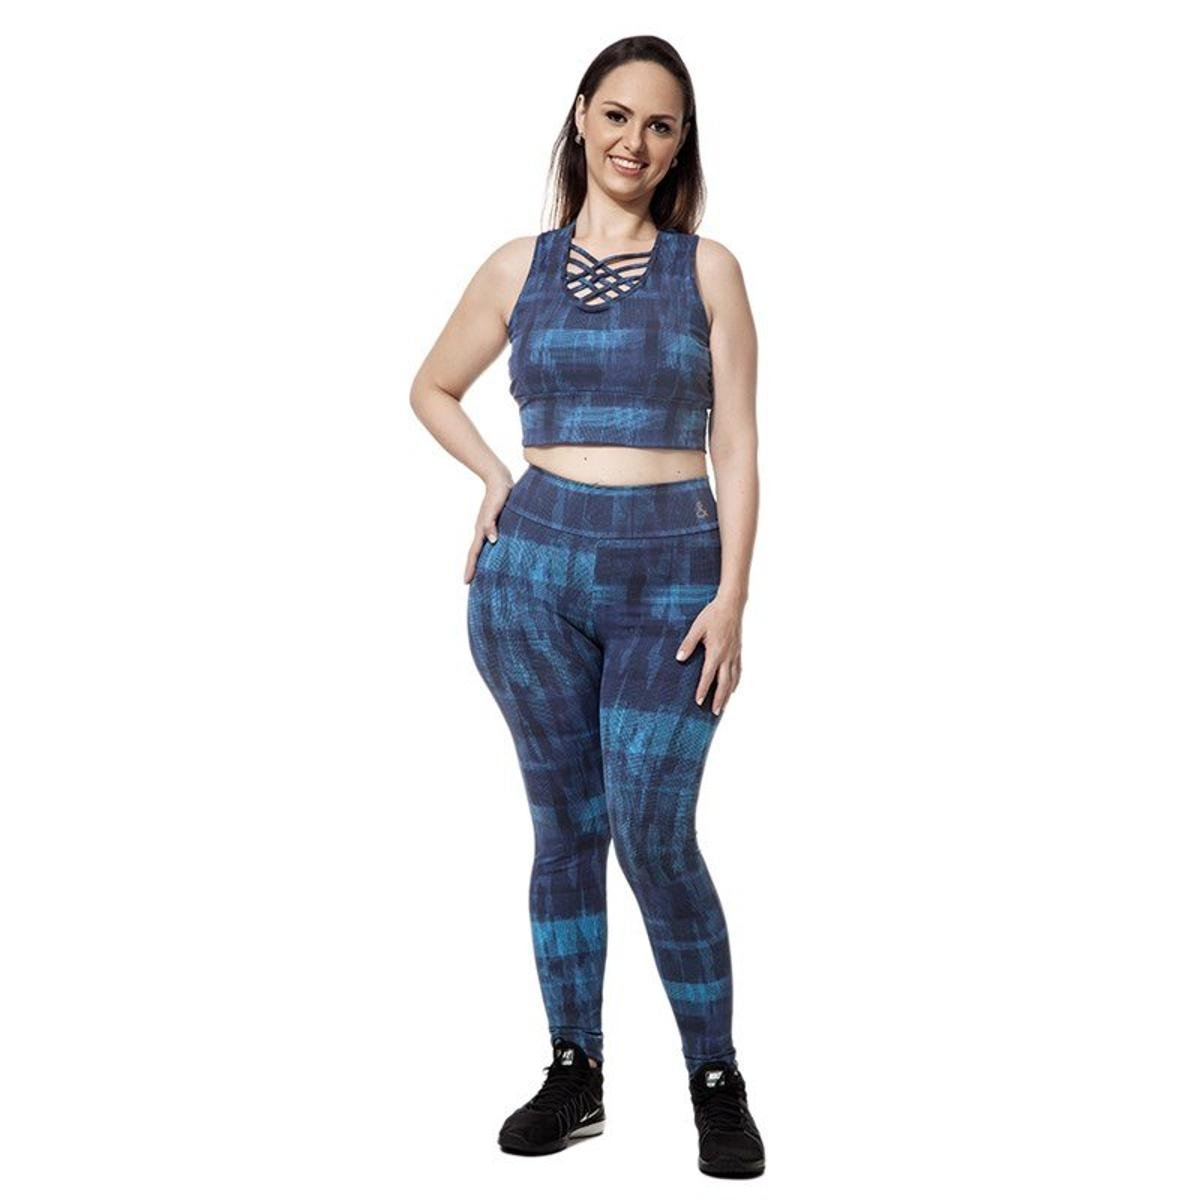 amp; Supplex Plus Legging e Marinho Movimento Calça Cia Azul IFHqc